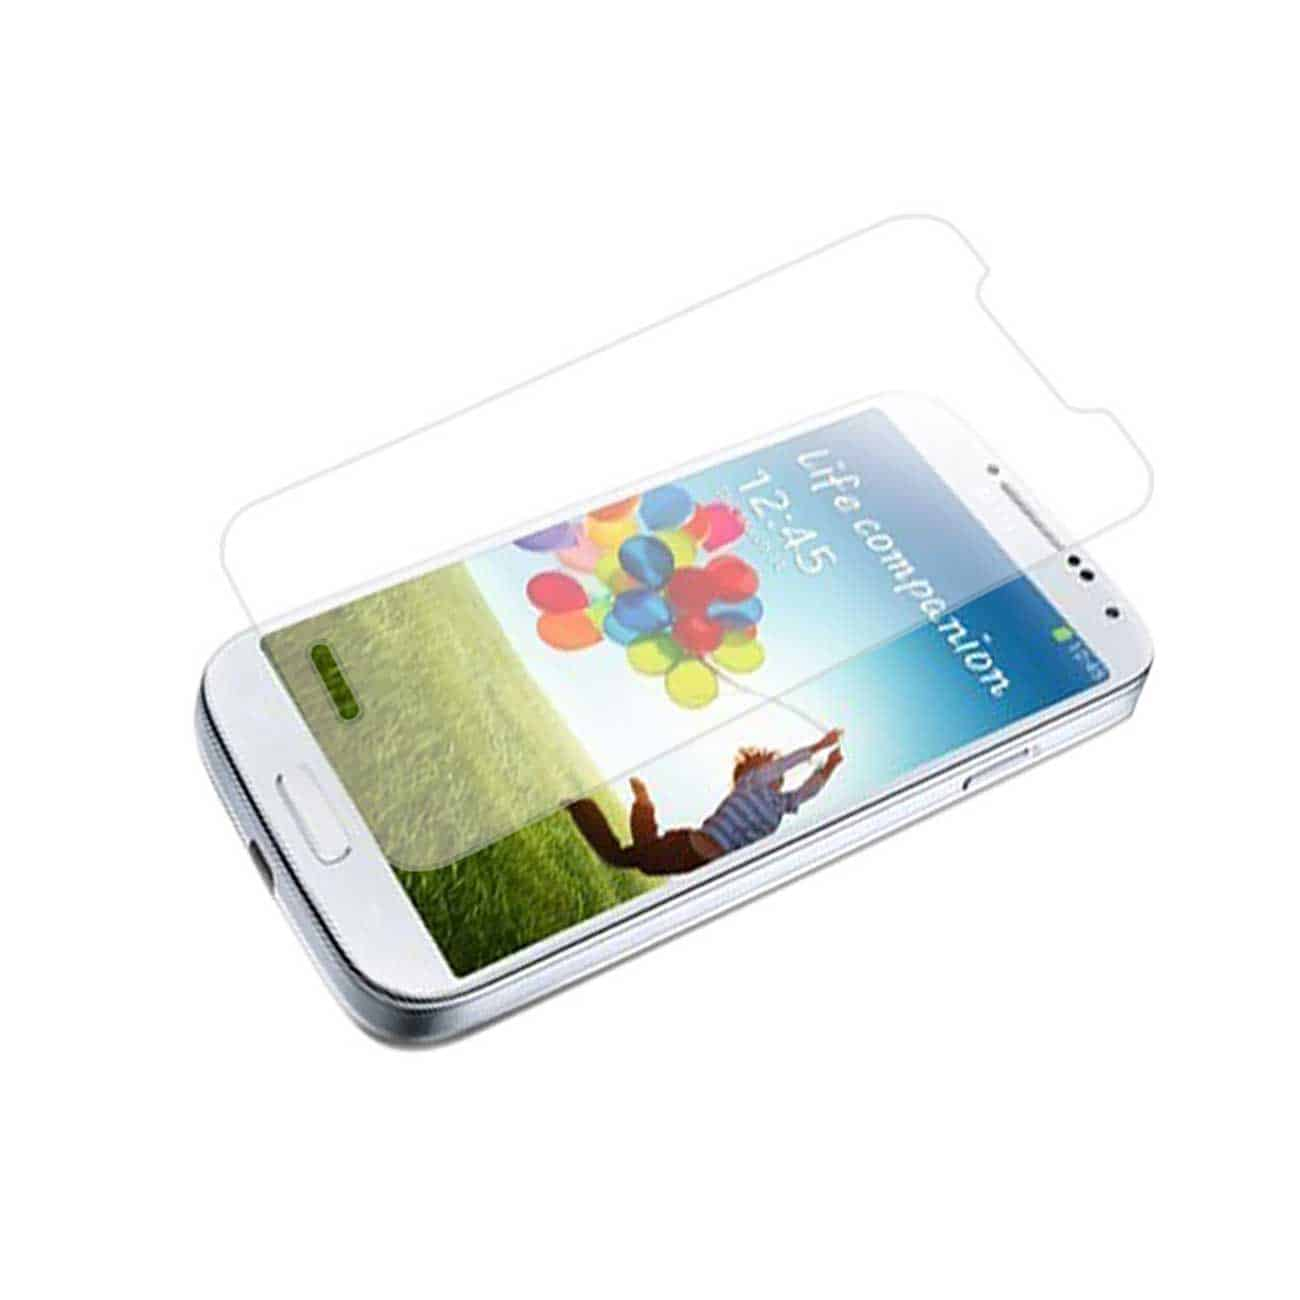 SAMSUNG GALAXY S4 TEMPERED GLASS SCREEN PROTECTOR IN CLEAR